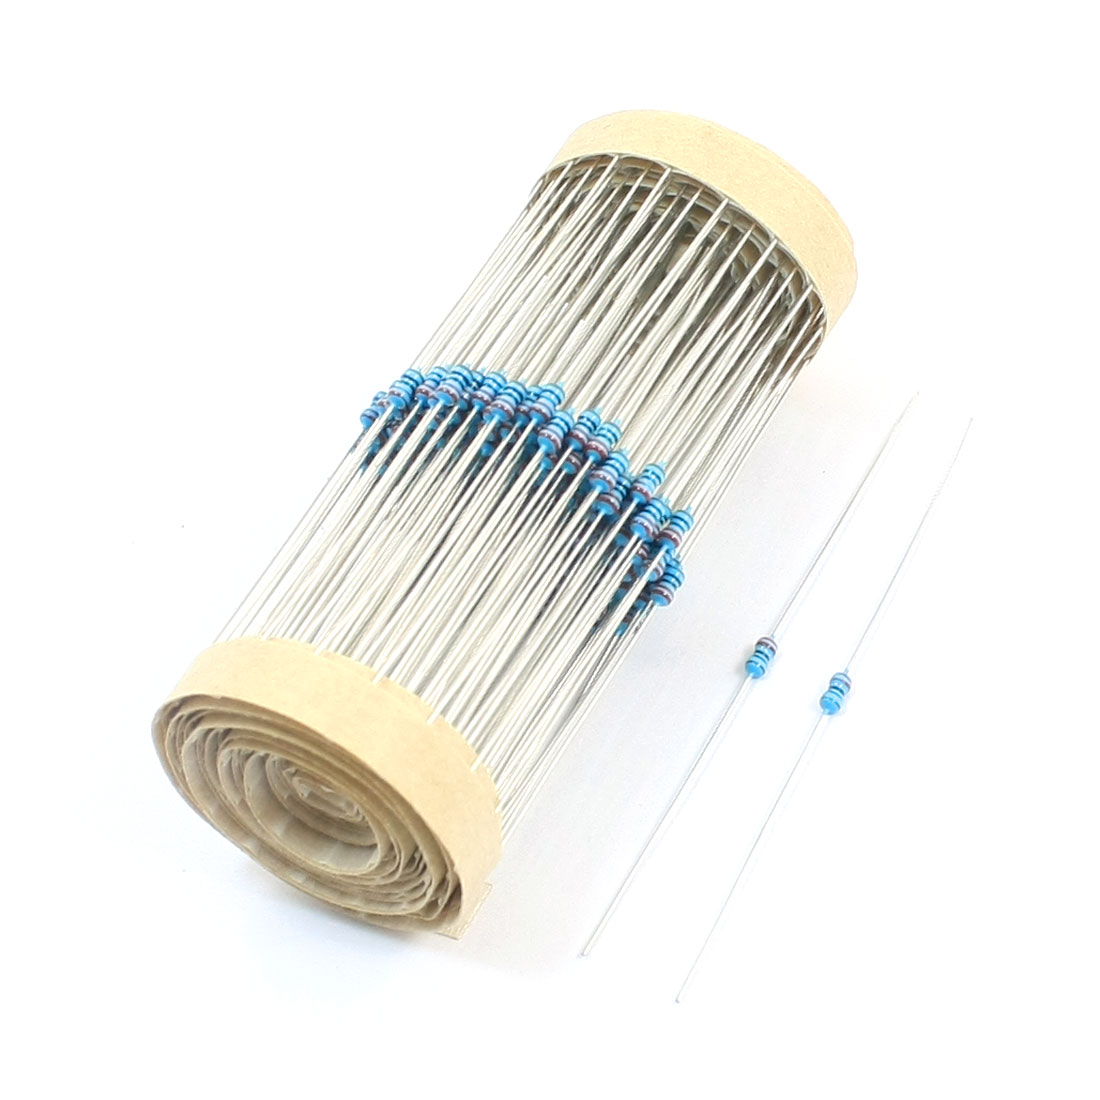 300Pcs Axial Lead Through Hole 1/8W 1% 220 Ohm Metal Film Resistor